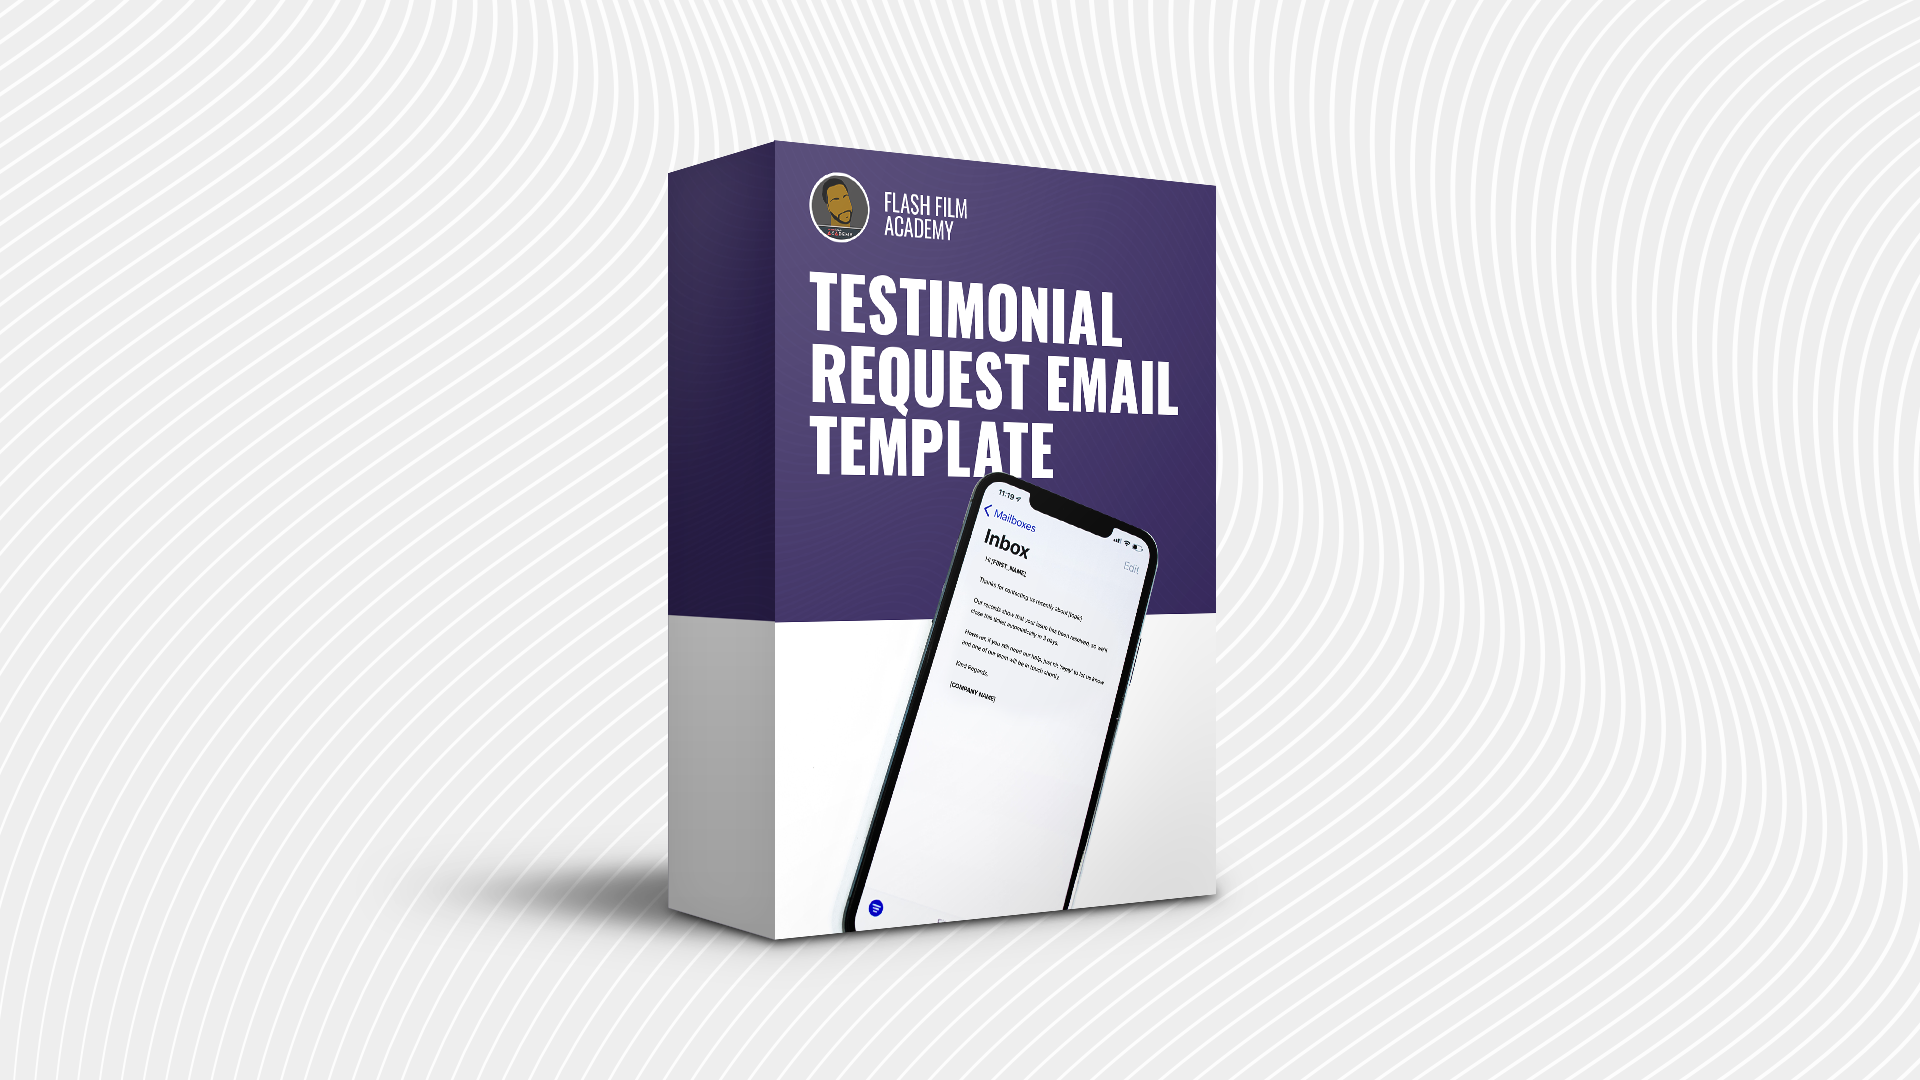 TESTIMONIAL REQUEST EMAIL TEMPLATE